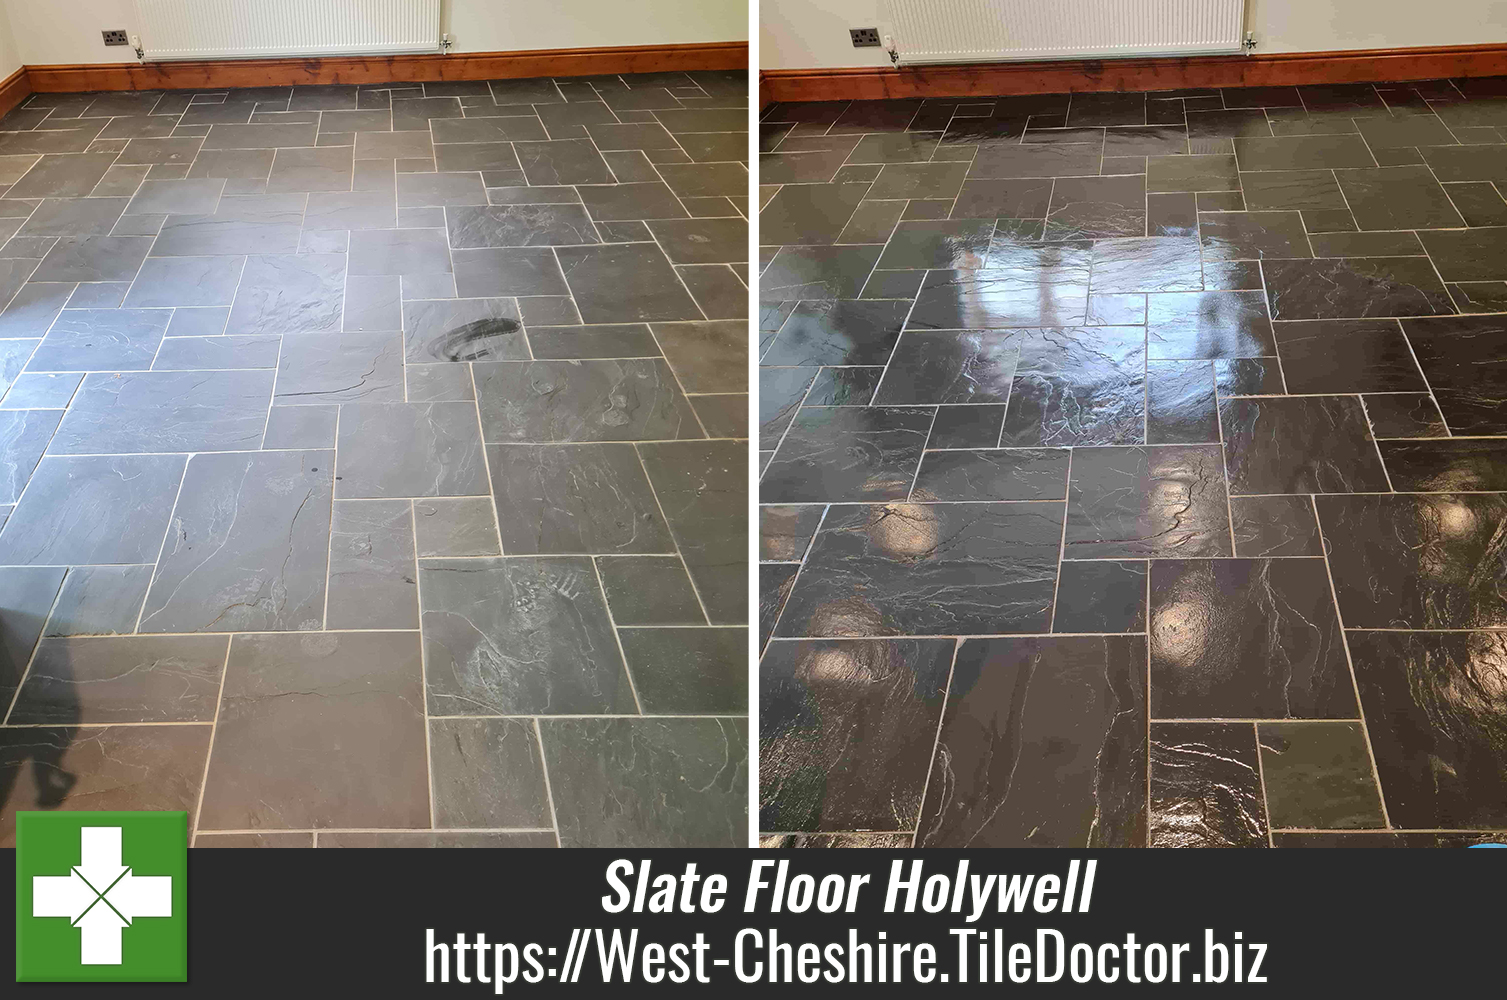 Welsh Slate Kitchen Floor Renovated in Holywell